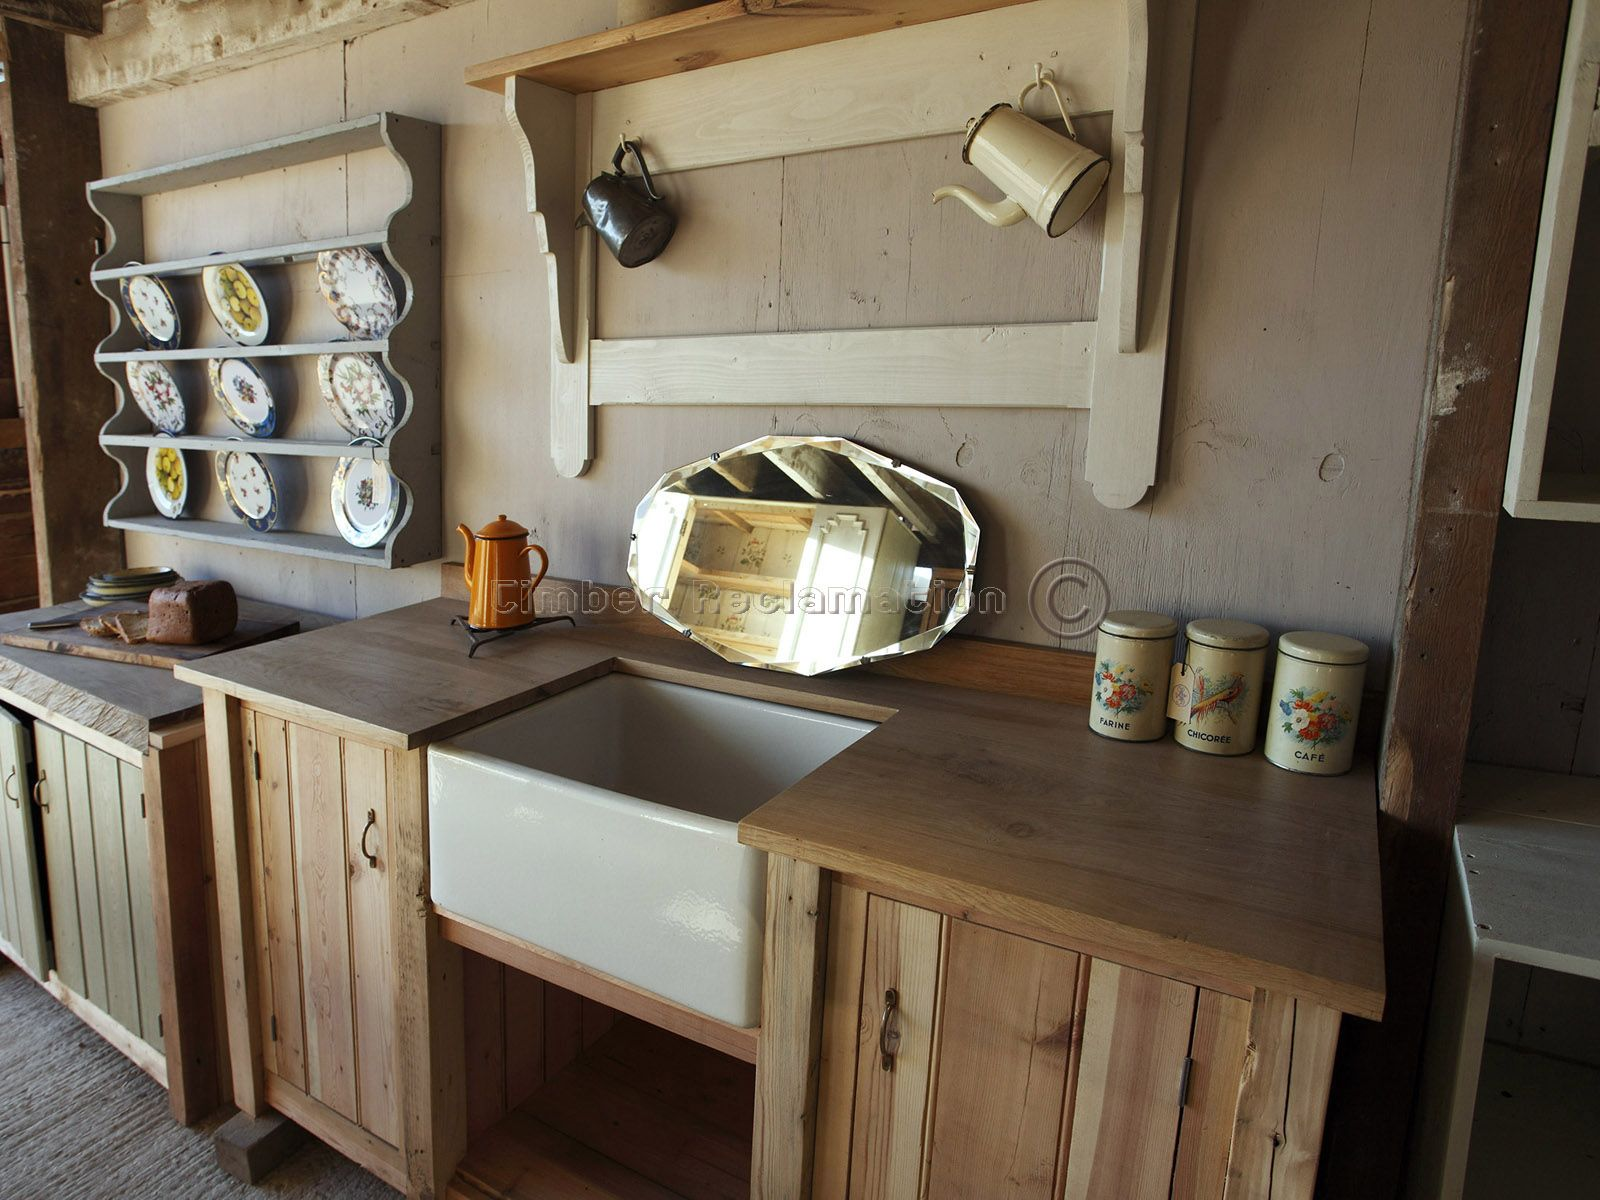 reclaimed kitchen google search house pinterest sink units